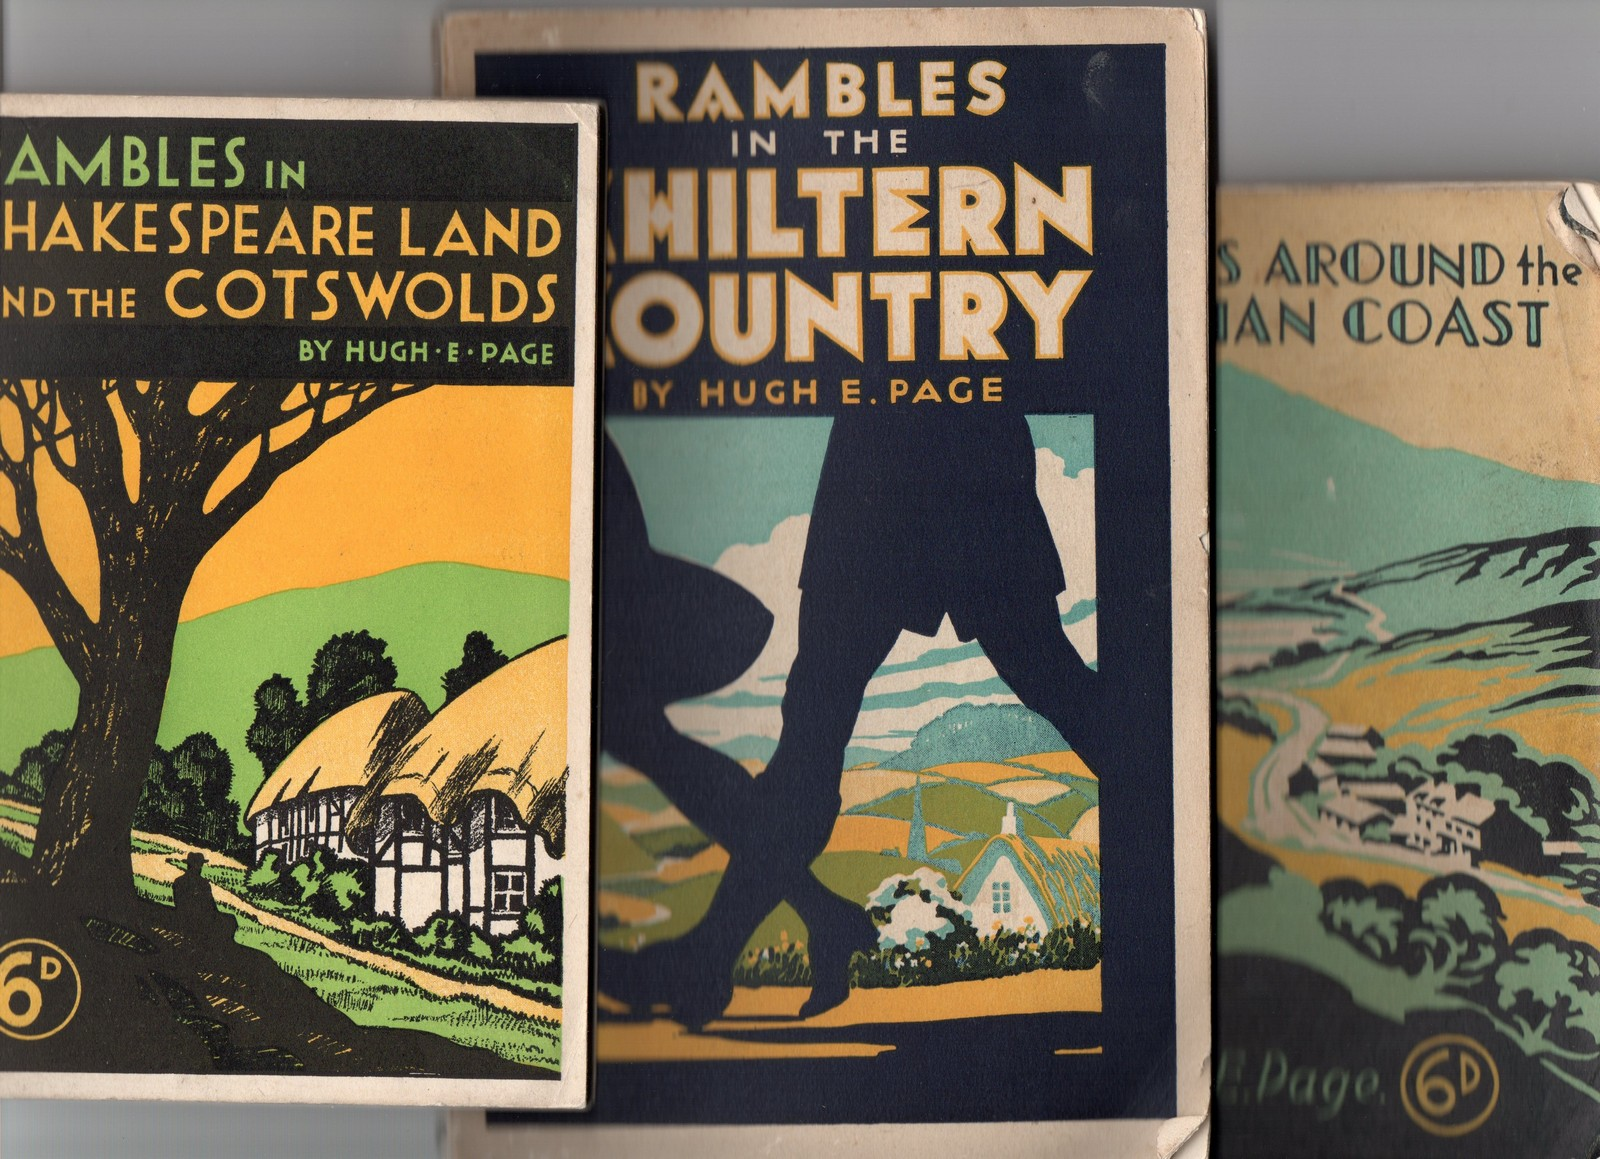 Lot 922 - GWR Ramblers books published by GWR, Rambles in the Chiltern Country; Rambles Around the Cambrian